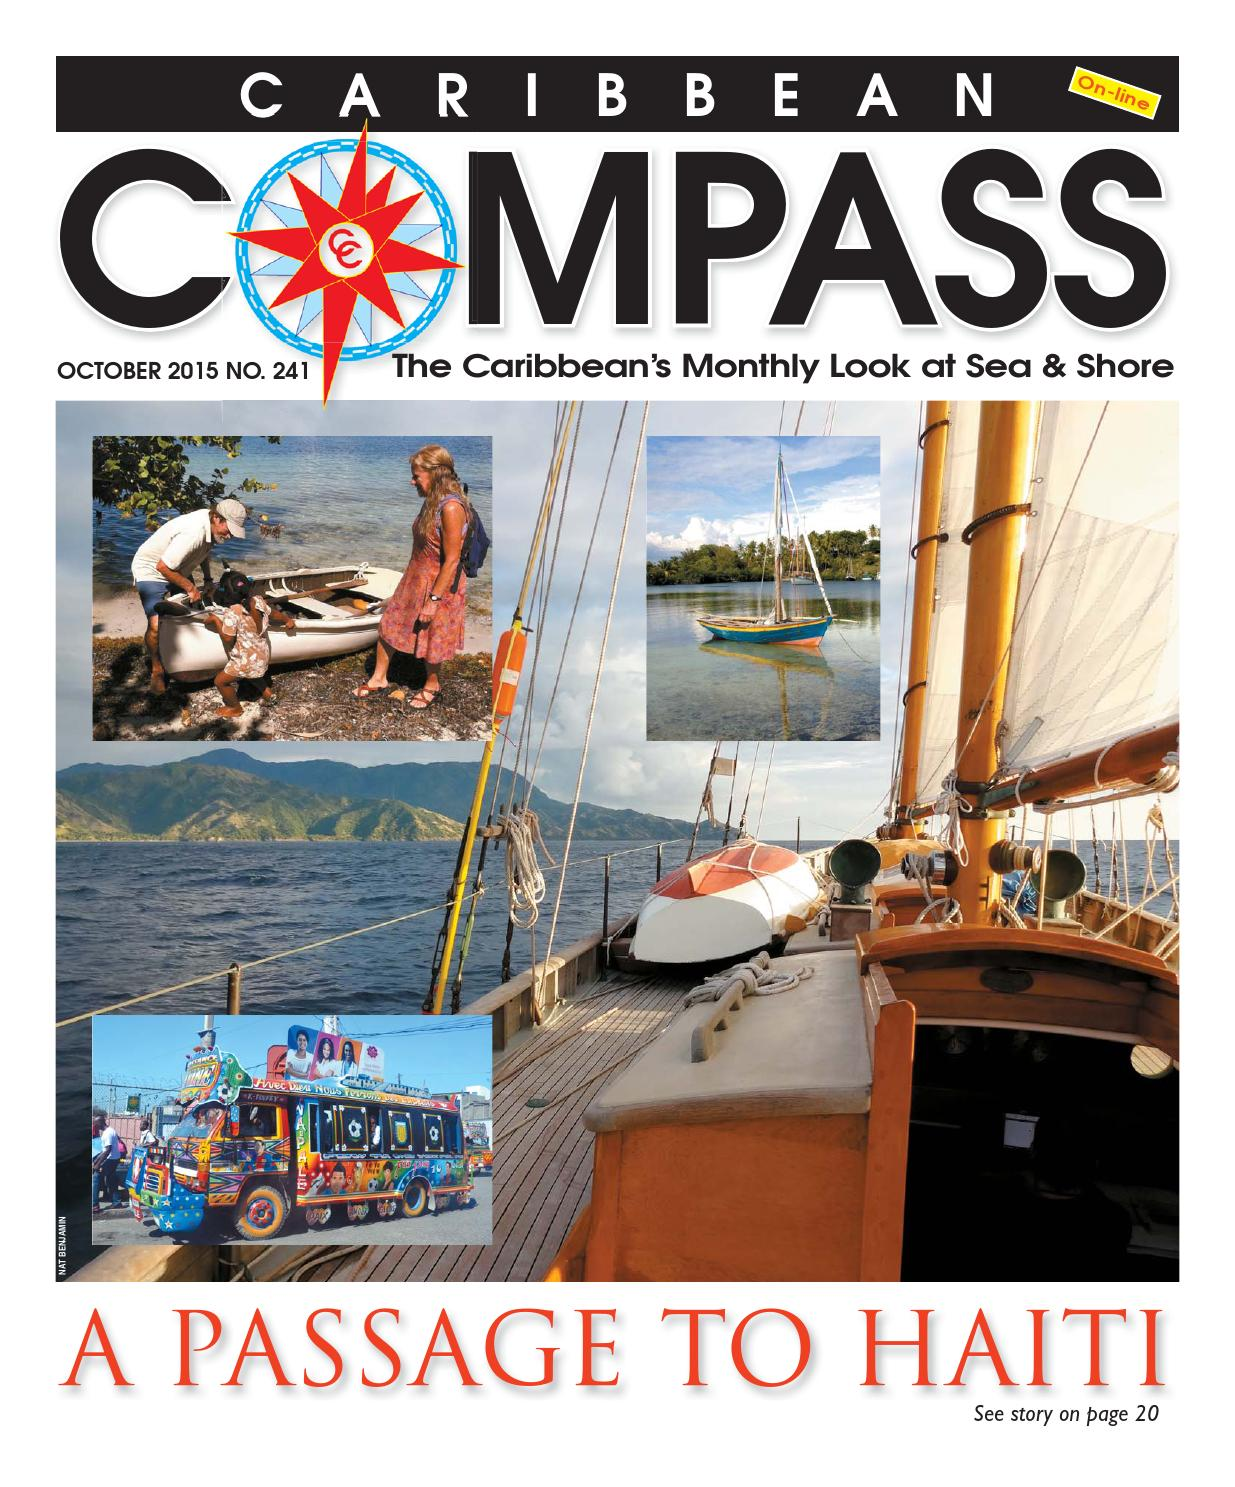 Caribbean compass yachting magazine october 2015 by compass caribbean compass yachting magazine october 2015 by compass publishing issuu fandeluxe Choice Image